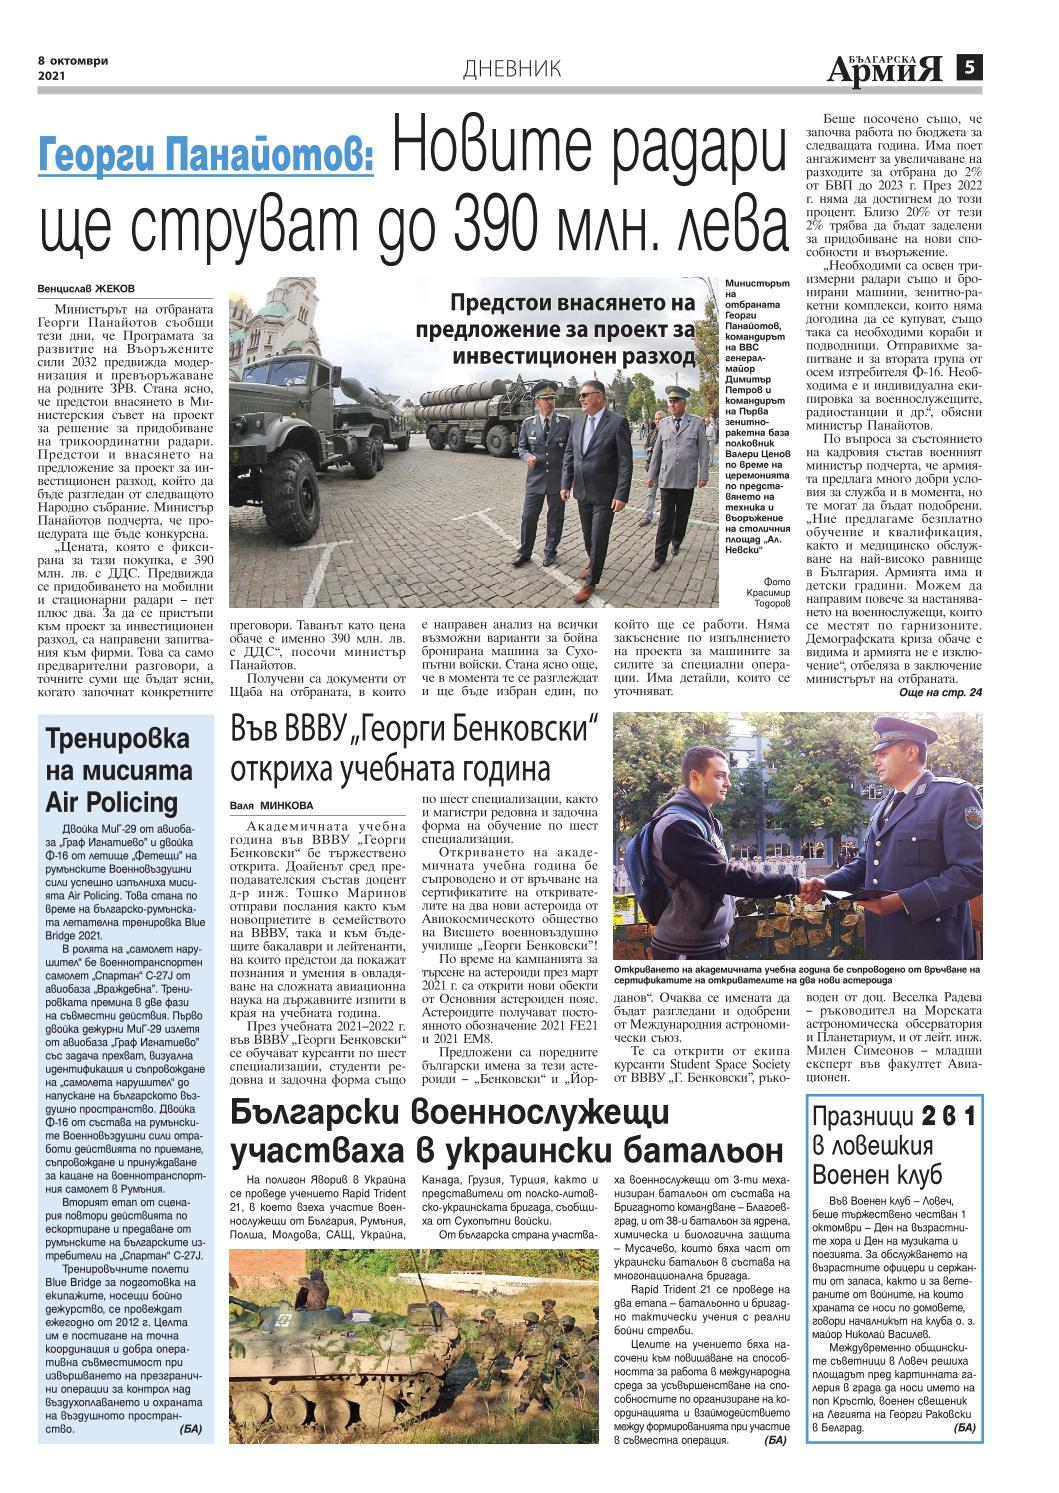 https://armymedia.bg/wp-content/uploads/2021/10/05.page1_-1.jpg